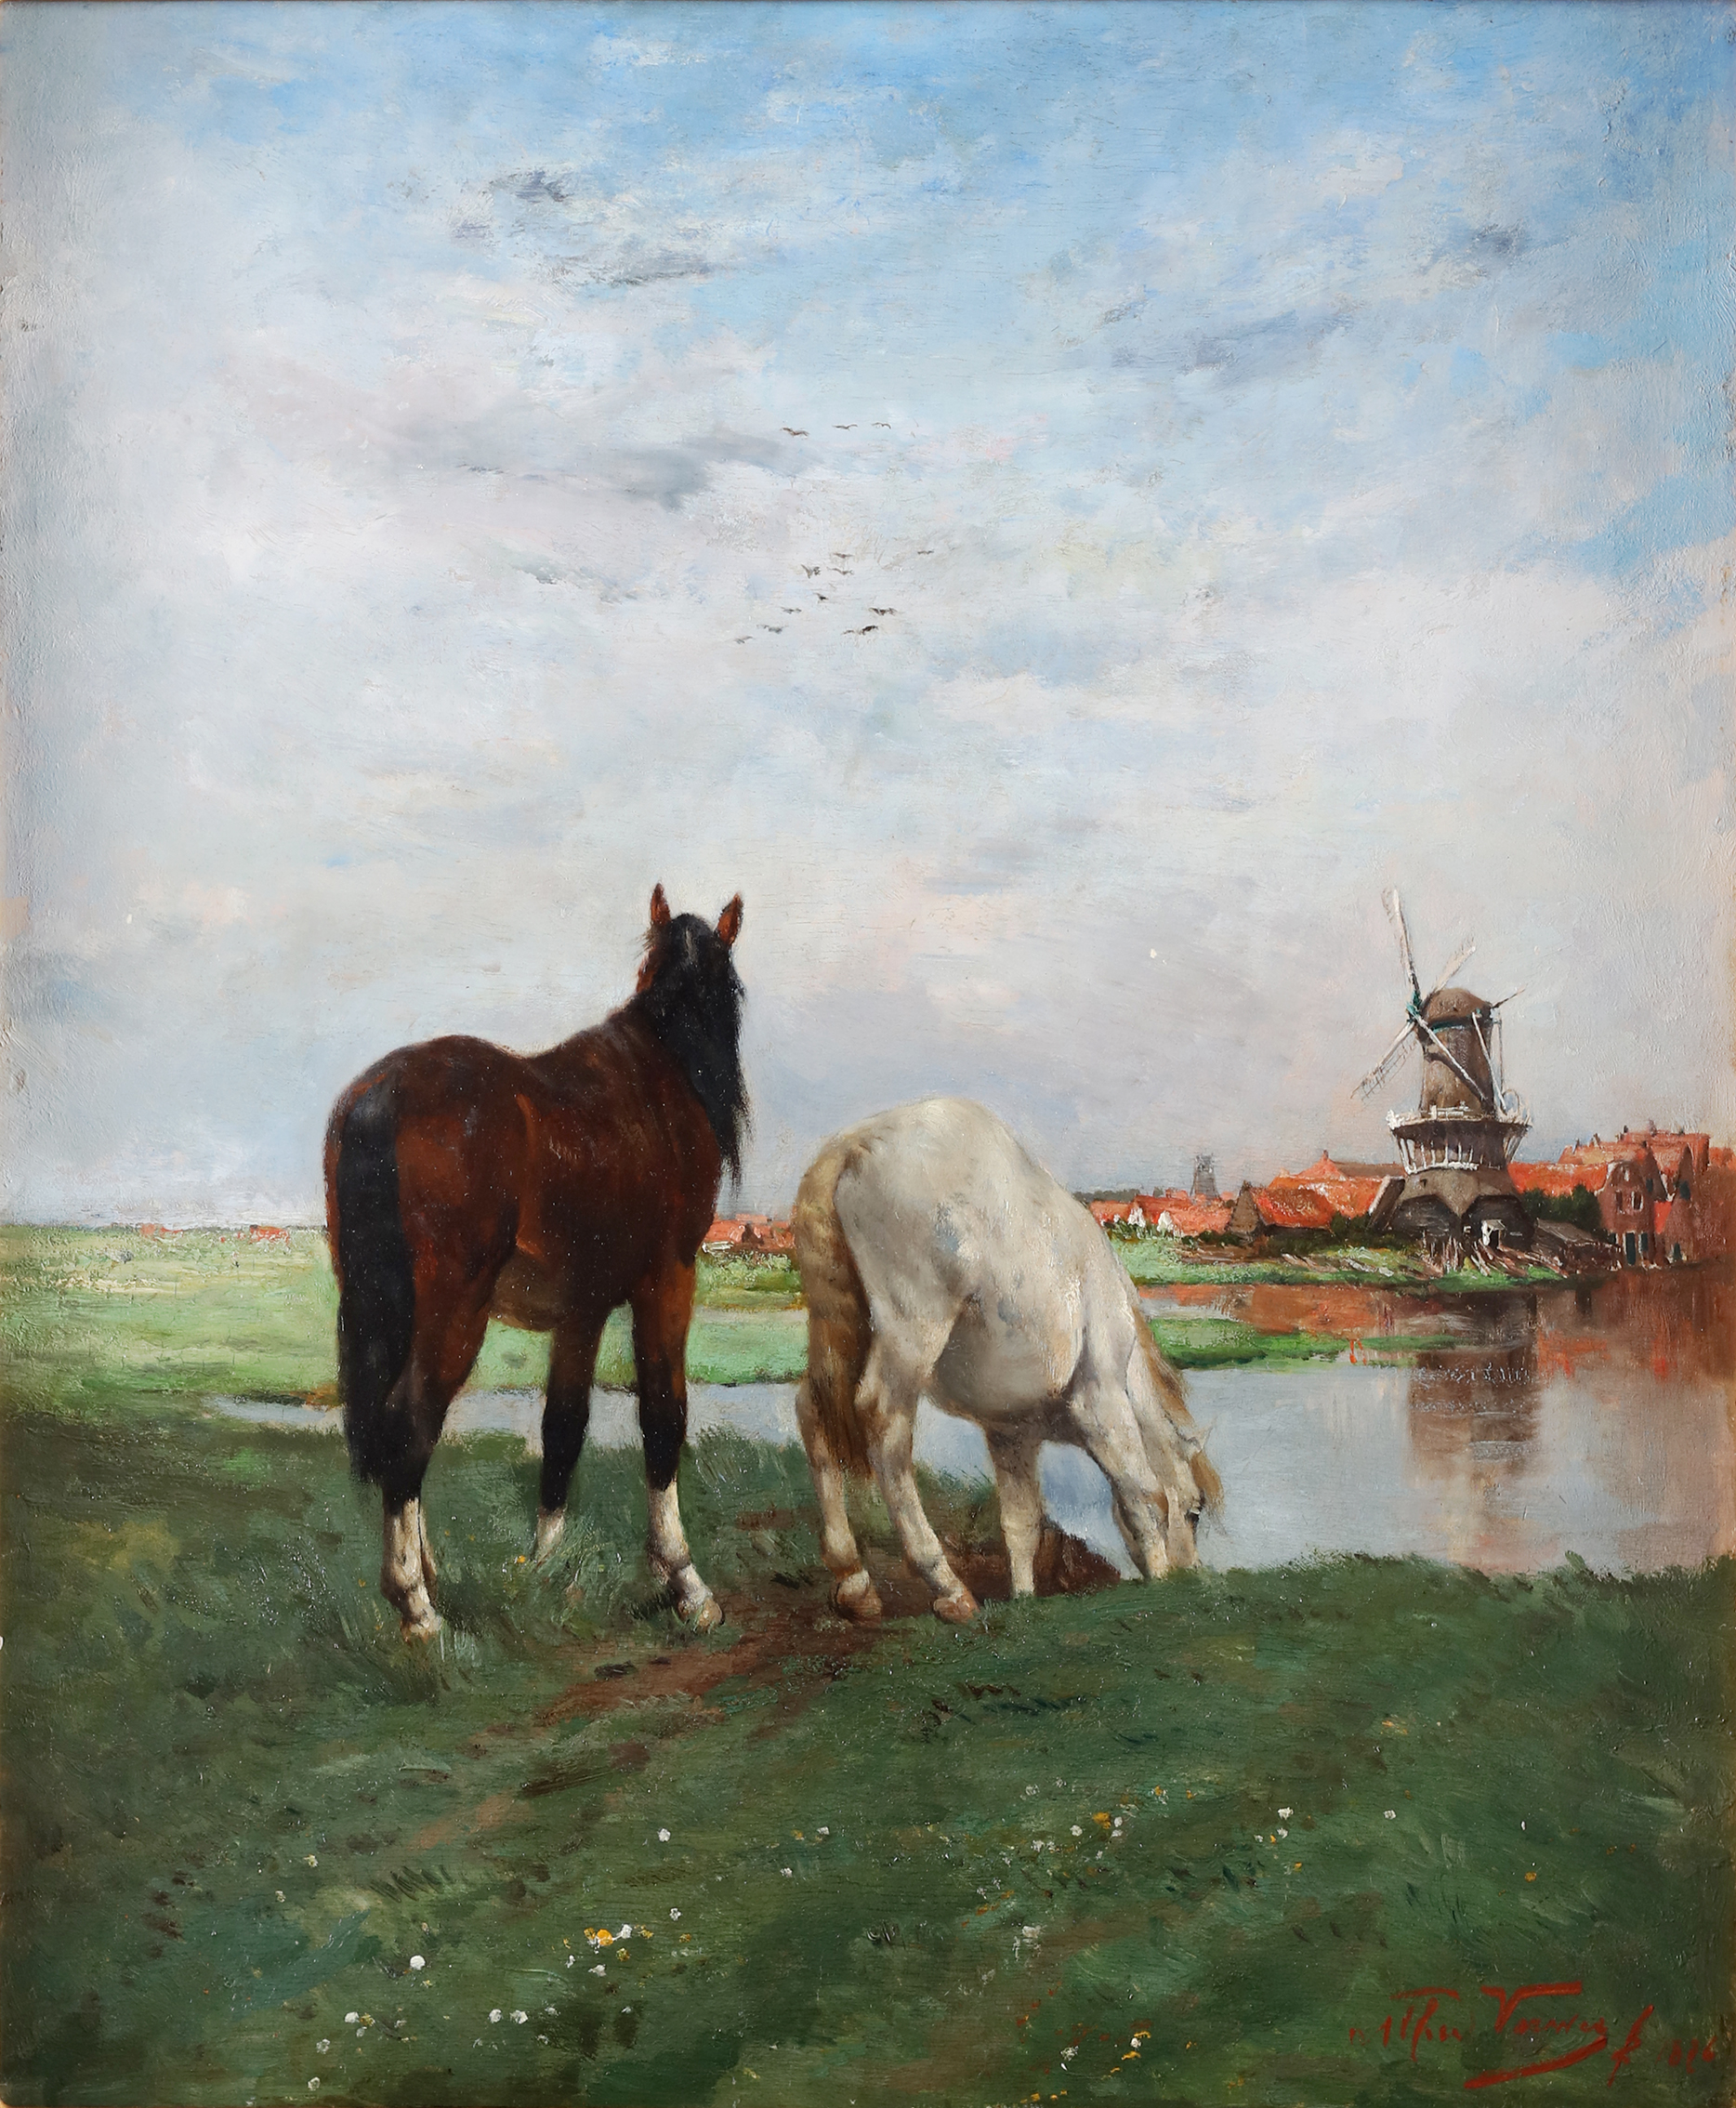 Horses in a meadow, a dutch town with windmail beyond